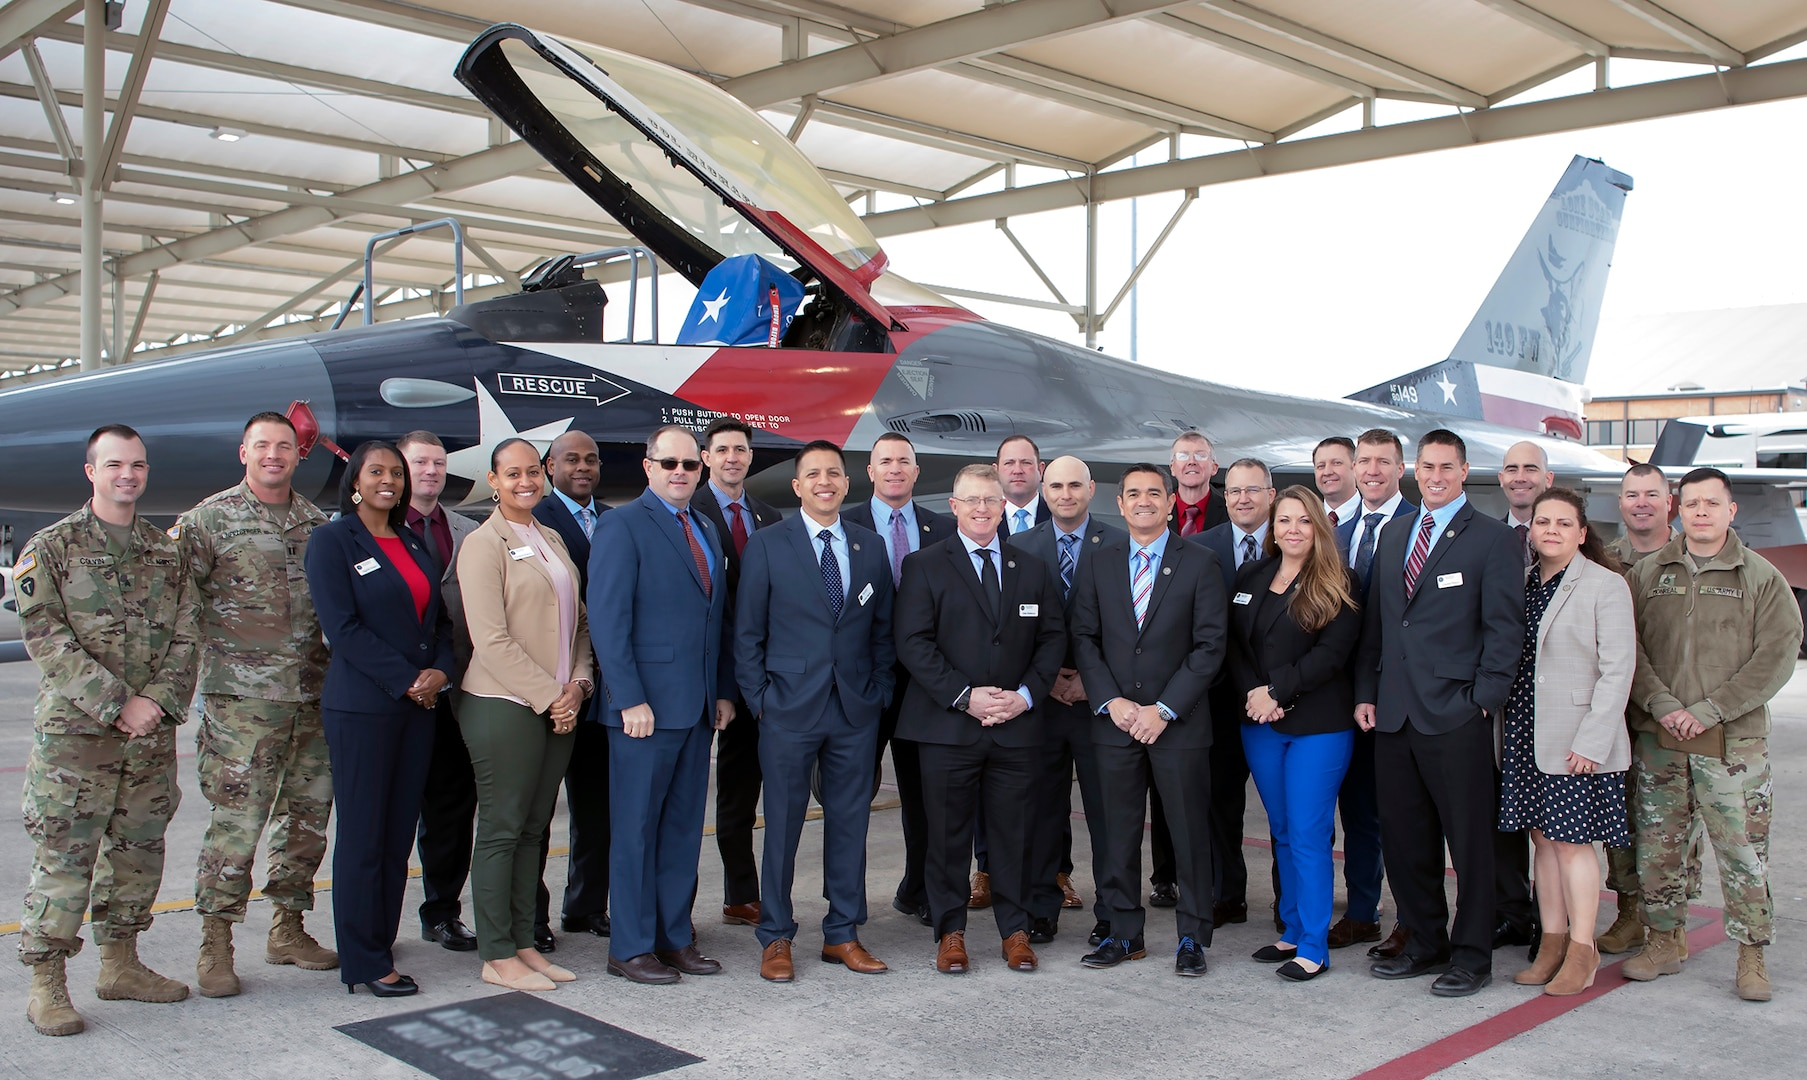 Participants of The Adjutant General's Leader Development Program stand in front of an F-16 assigned to 149th Fighter Wing at Joint Base San Antonio-Lackland Jan. 30. TAGLDP is intended to fill critical preparation gaps by introducing mid-level leaders to Texas Military Department specific strategic level concepts.